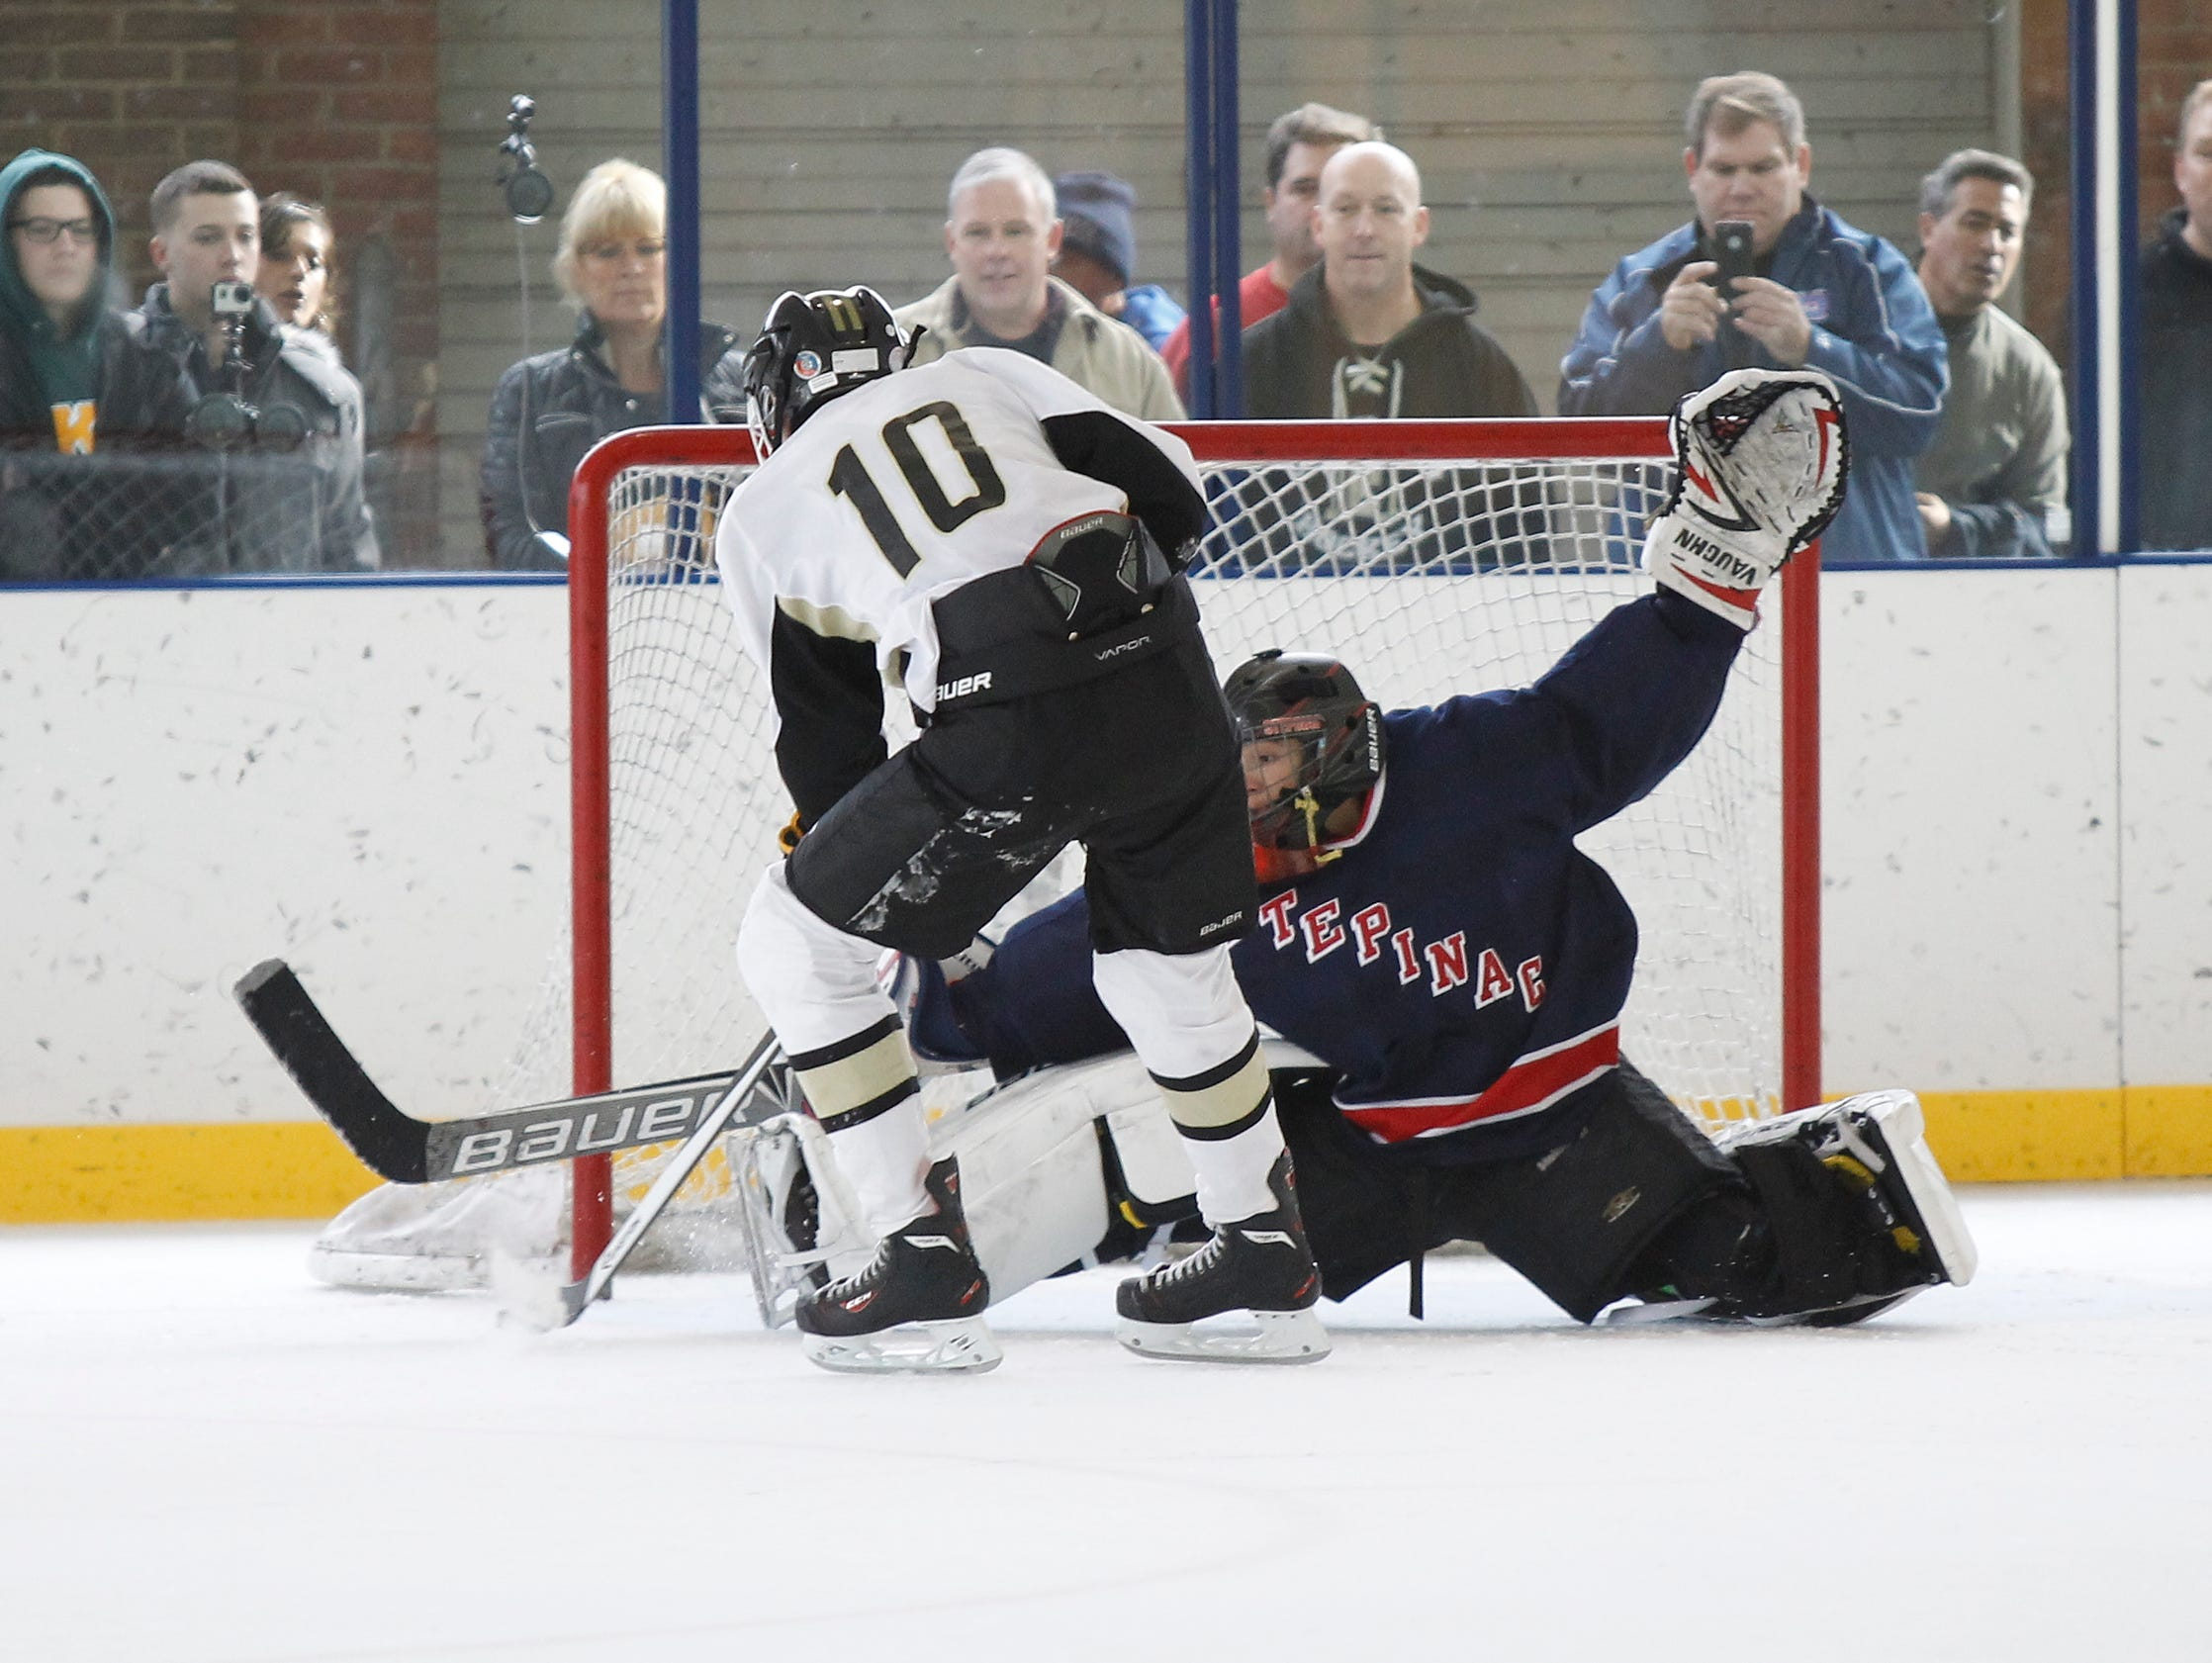 Clarkstown's Harrison Levy (10) scores on a penalty shot against Stepinac goalie Tyler Rosado (1) during a varsity ice hockey game at the 2015 Guy Matthews Thanksgiving Invitational Hockey tournament at Ebersole Ice Rink in White Plains on Friday, Nov. 27, 2015.